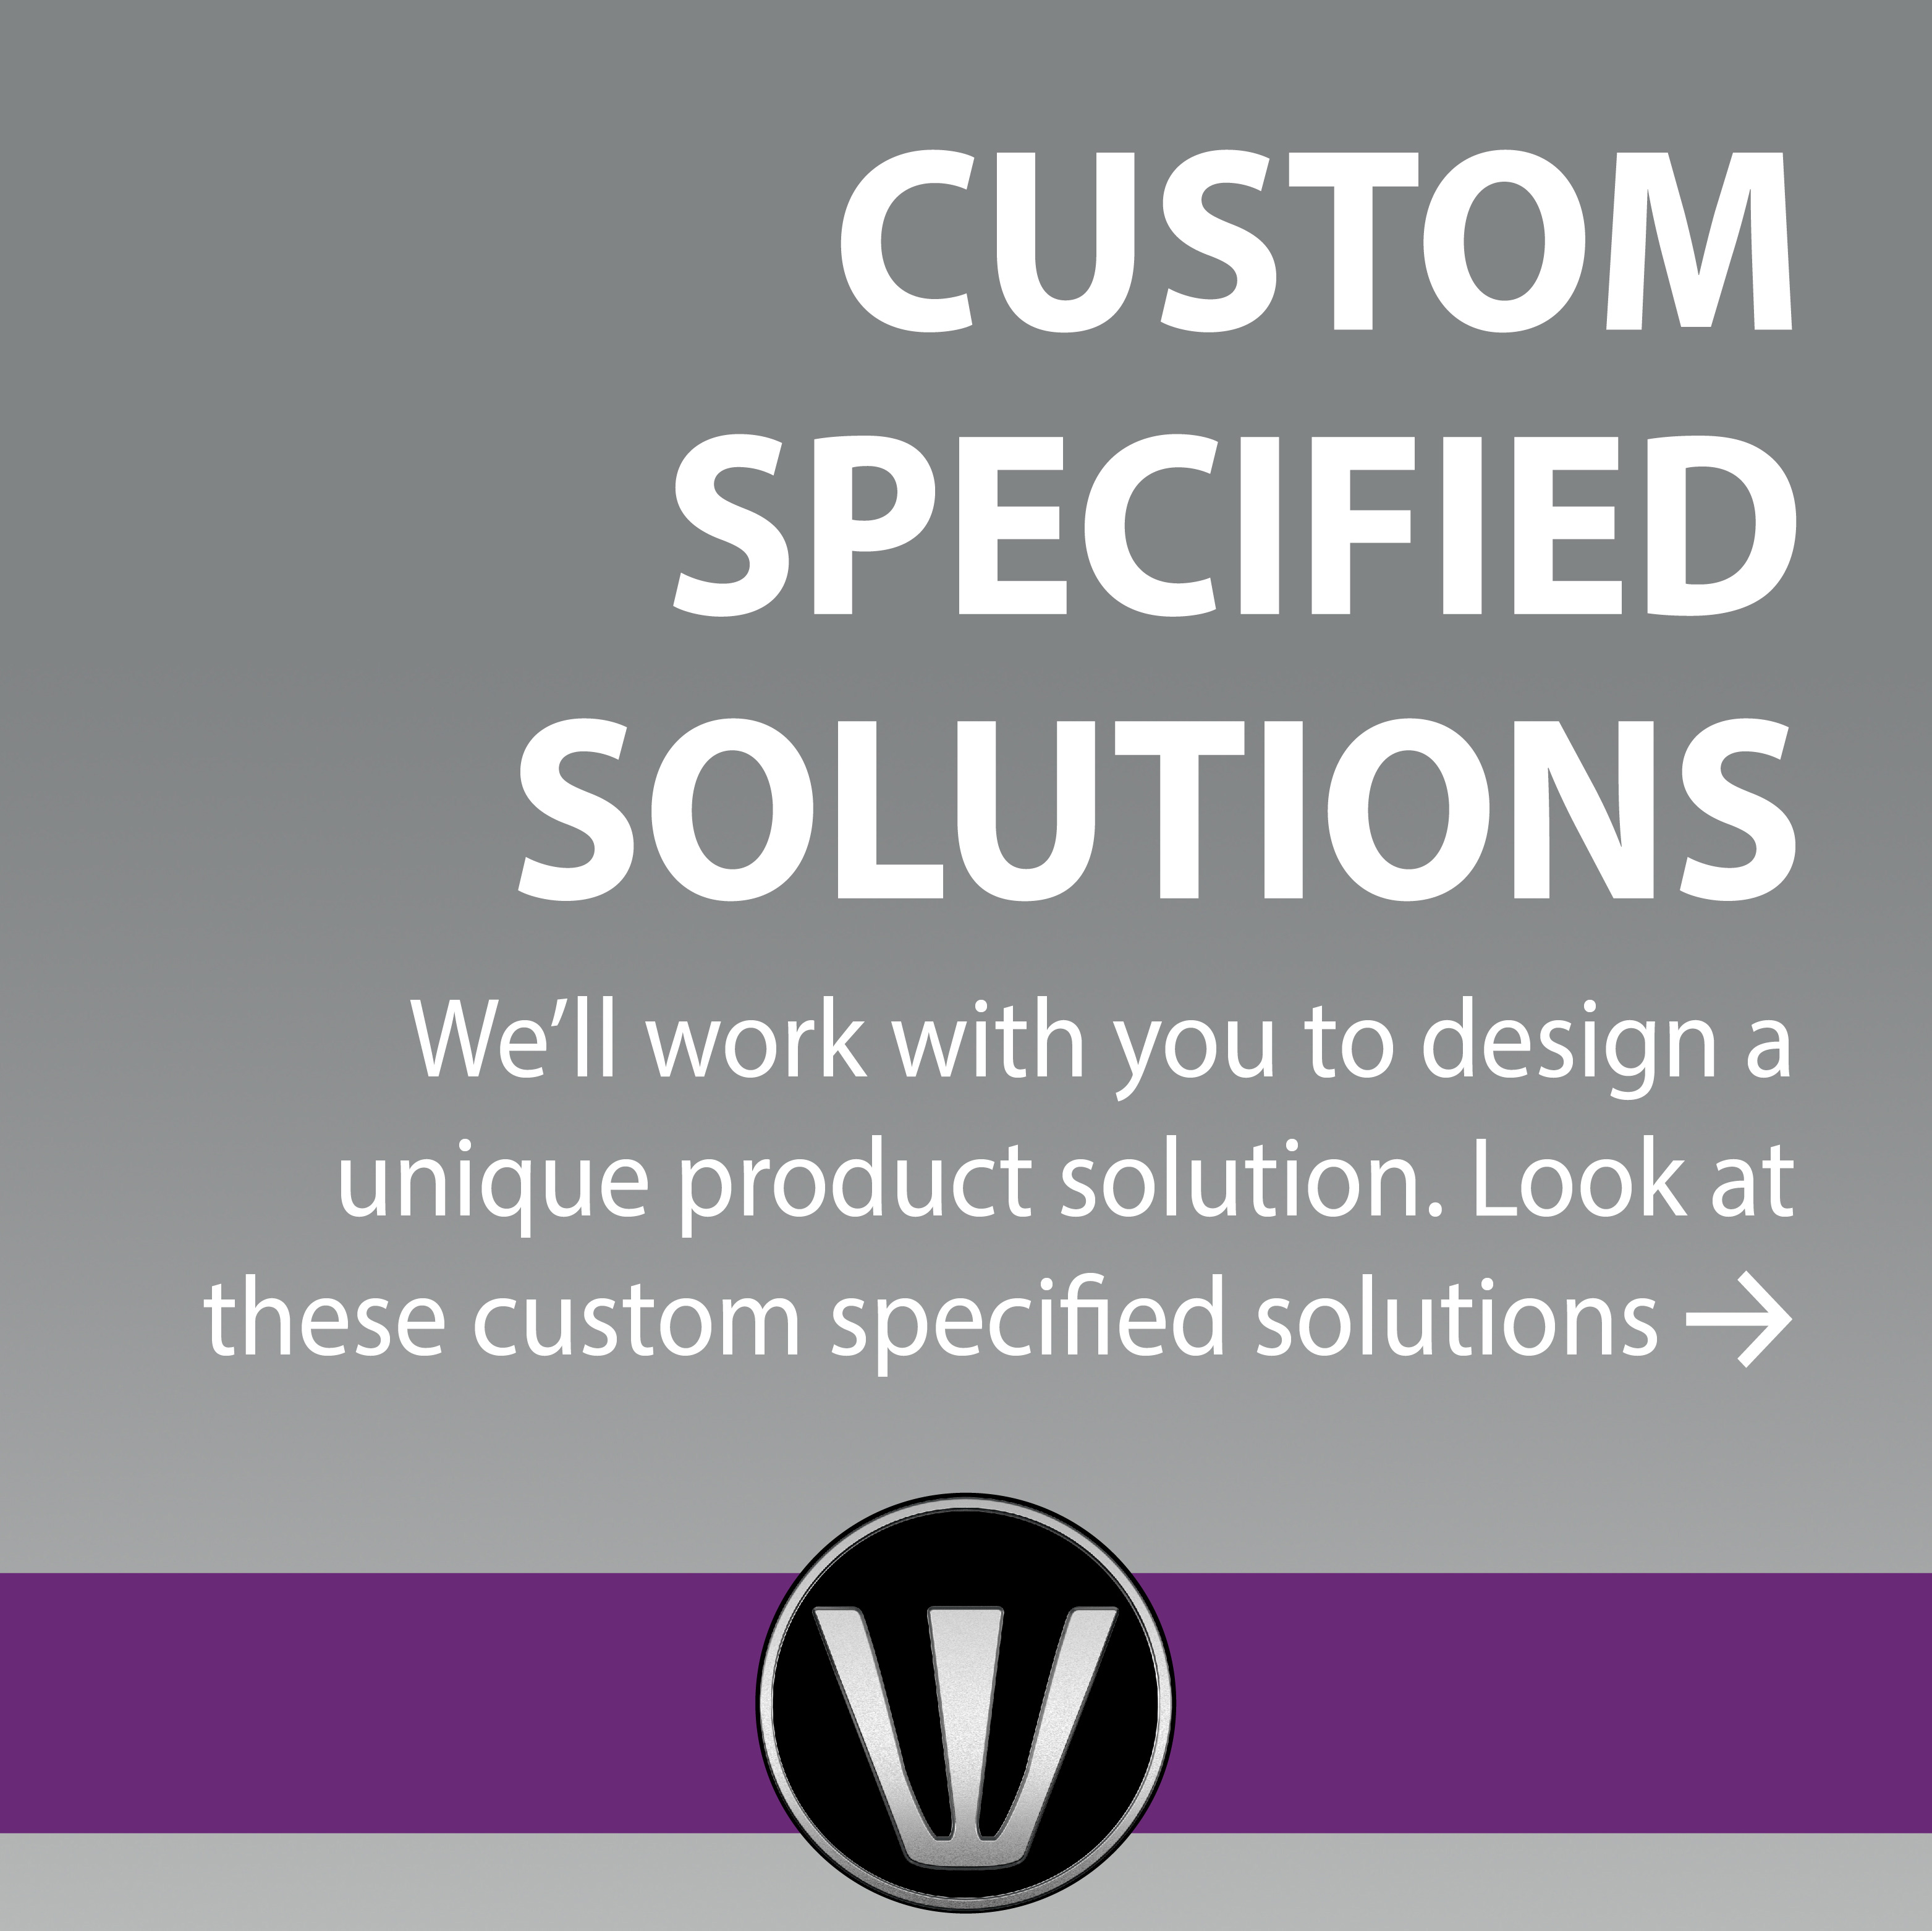 CUSTOM SPECIFIED SOLUTIONS